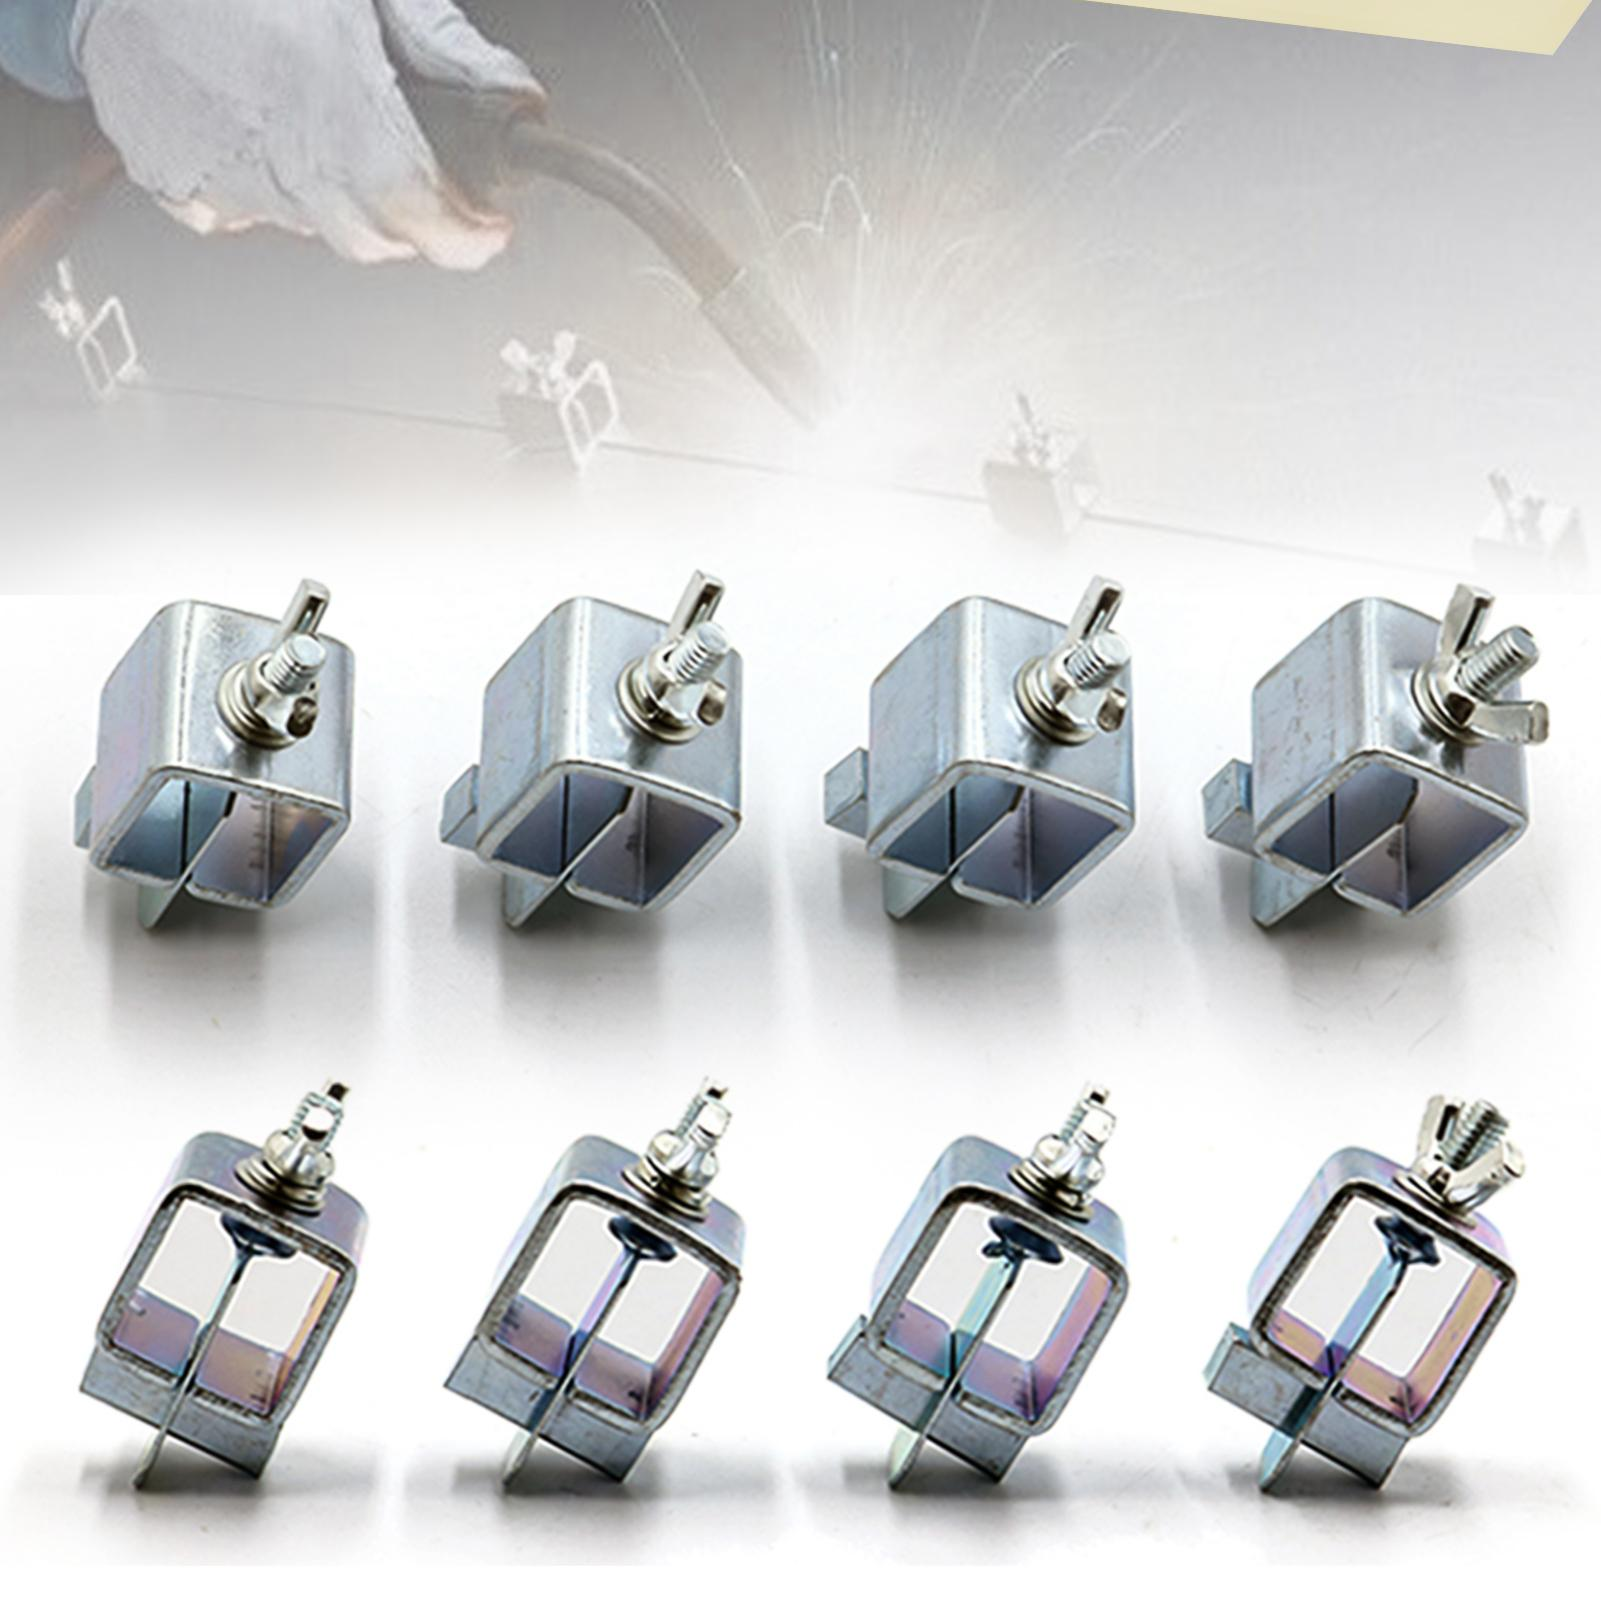 8/12/16Pcs Adjustable Butterfly Welding Positioner Clip Welding Clamps Holder Fixture Positioning Tools Set for Industrial